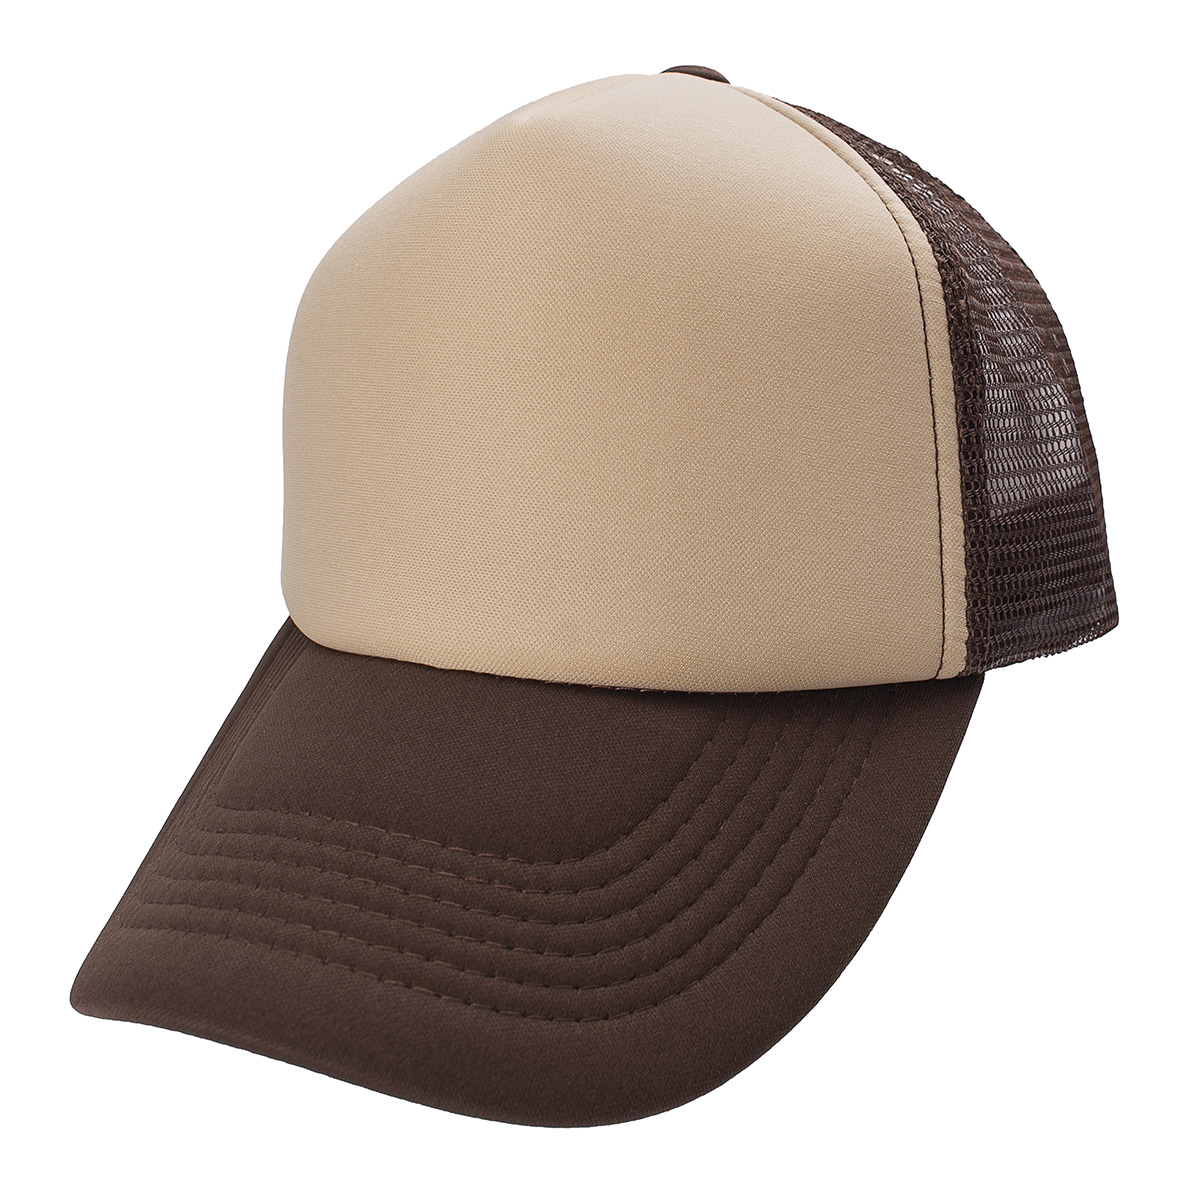 GORRA TRUCKER MARRON FRENTE BEIGE